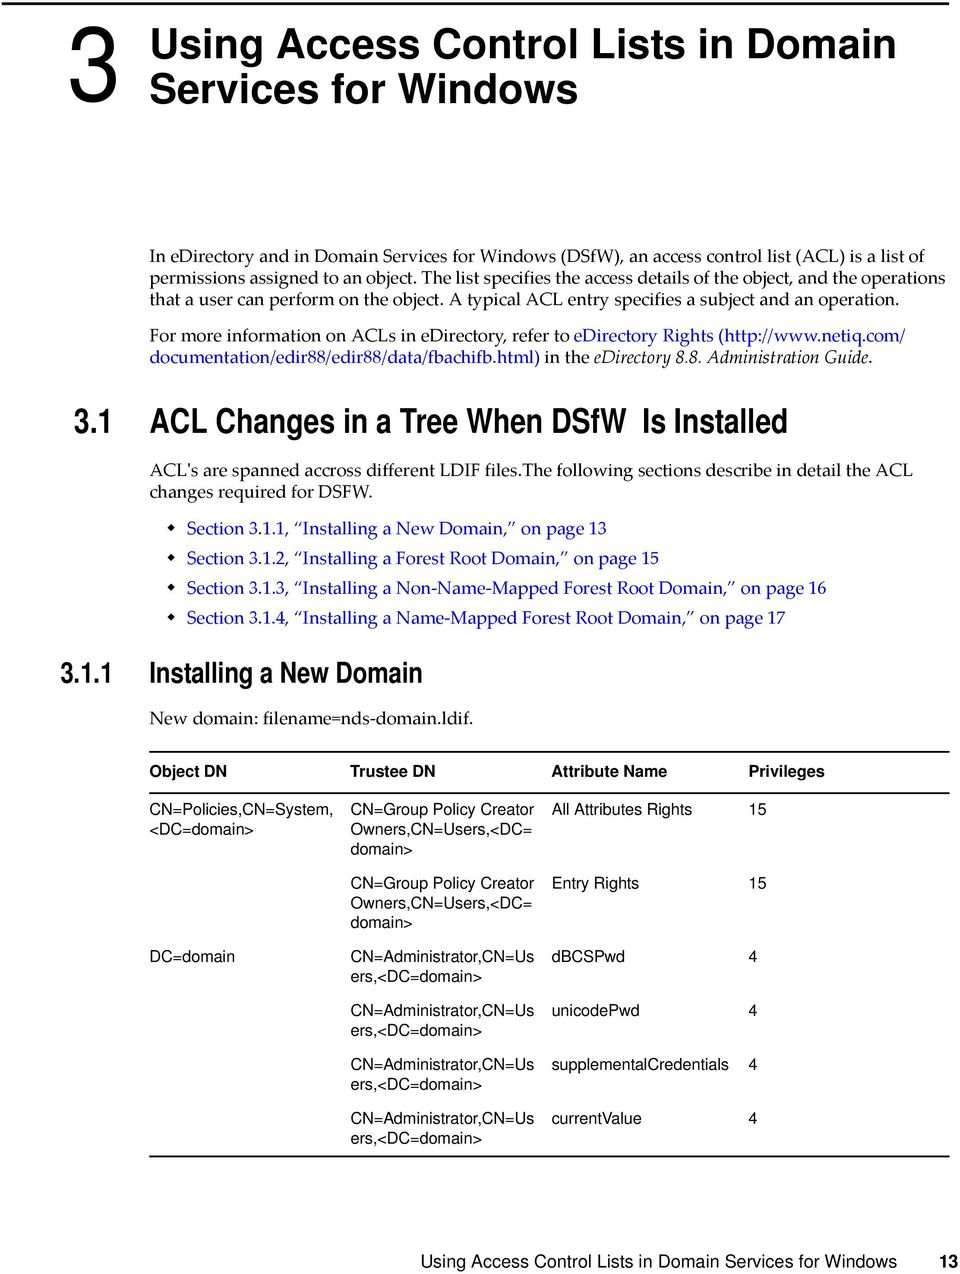 For more information on ACLs in edirectory, refer to edirectory Rights (http://www.netiq.com/ documentation/edir88/edir88/data/fbachifb.html) in the edirectory 8.8. Administration Guide. 3.